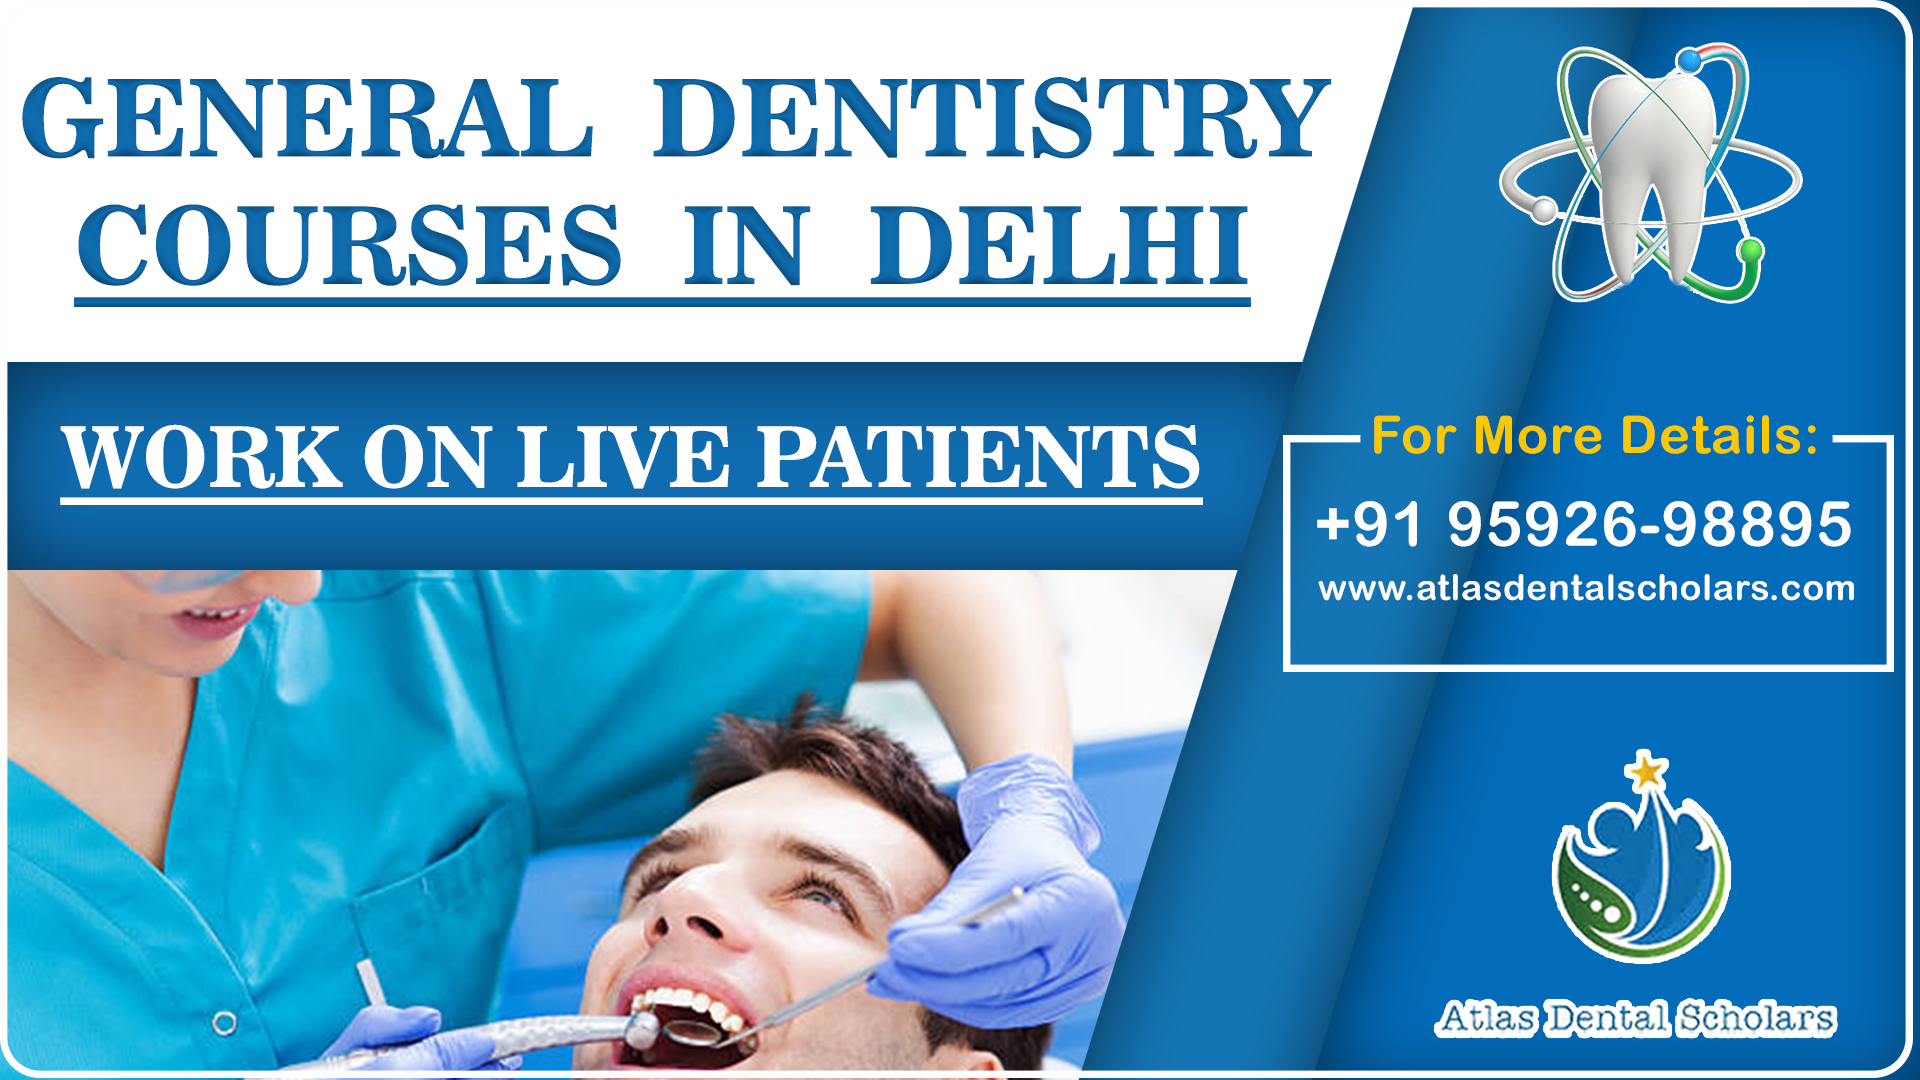 General Dentistry Course in Delhi